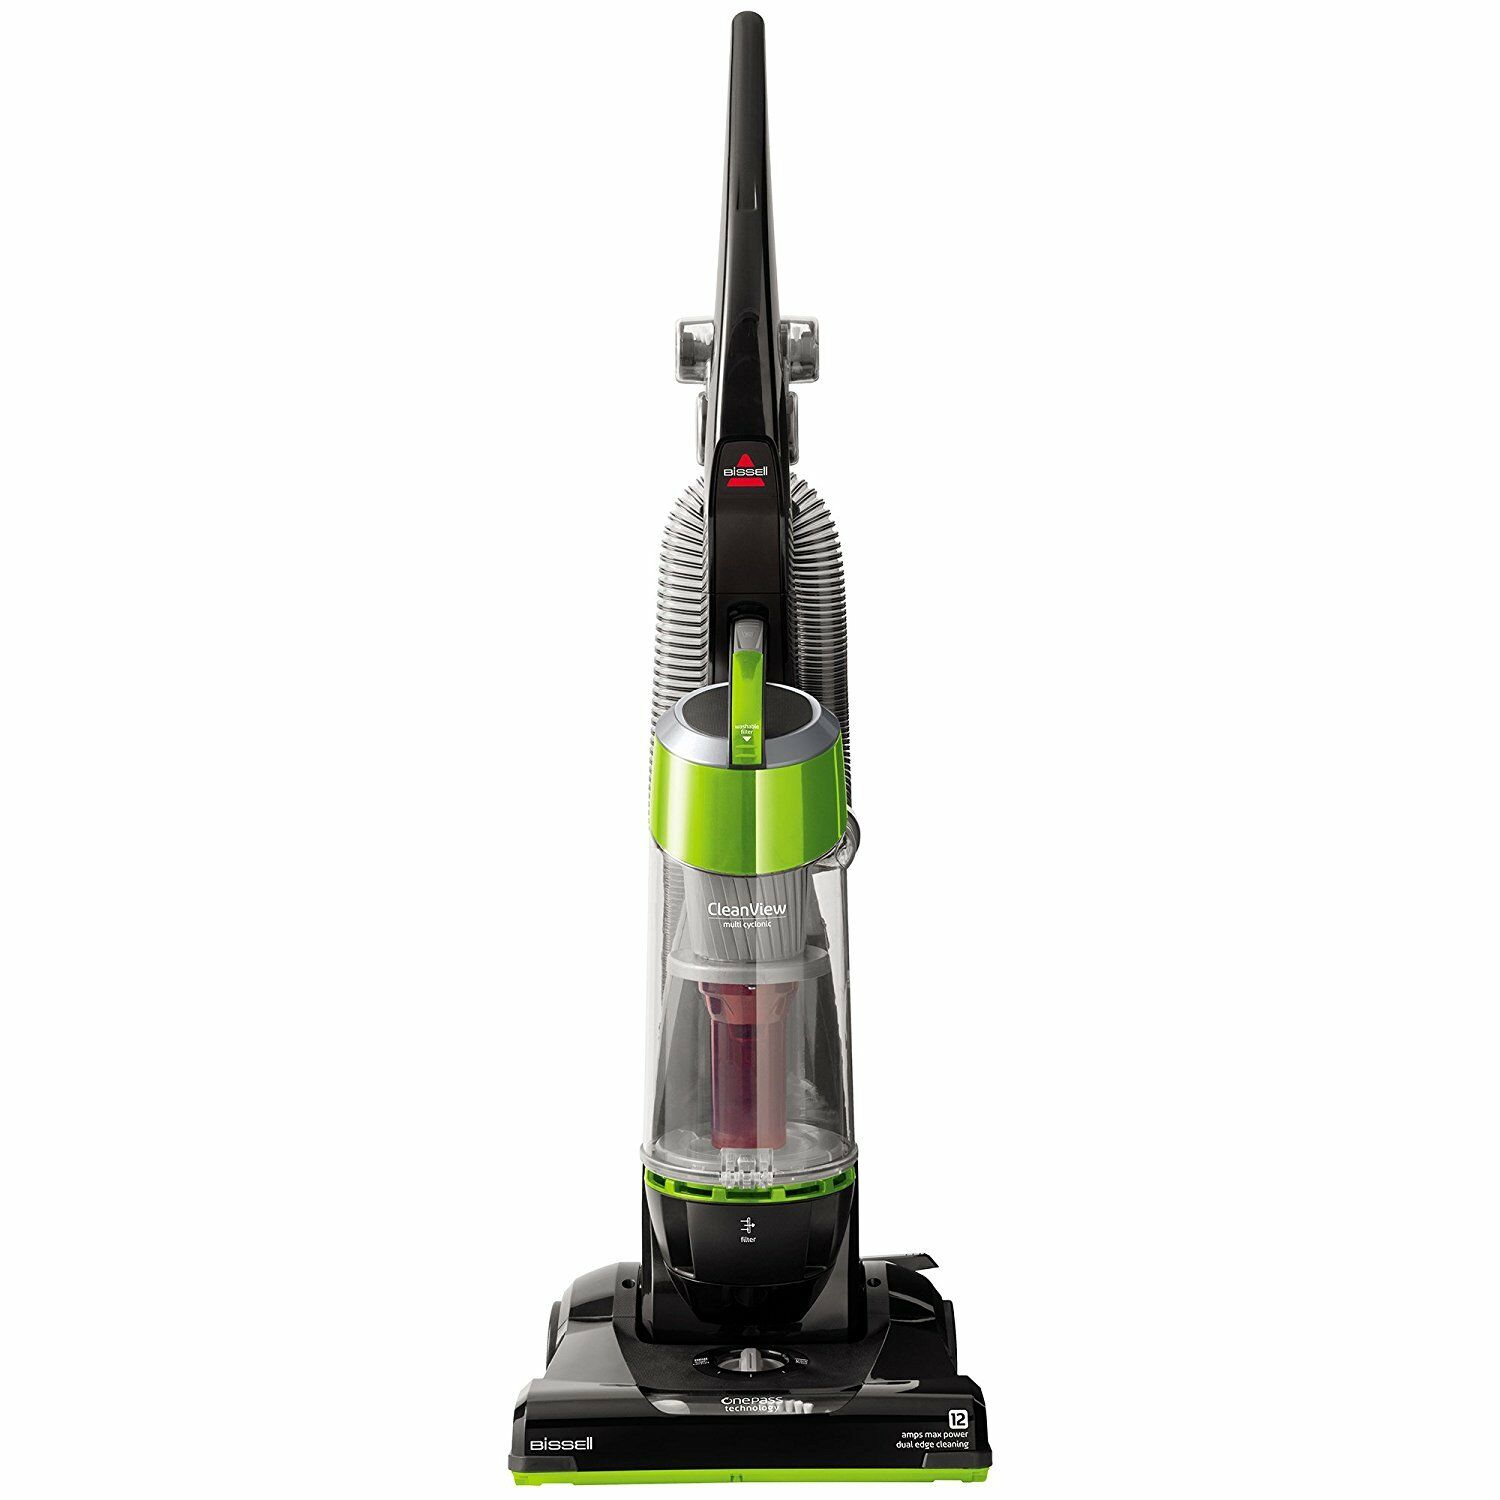 Bissell Cleanview Bagless Upright Vacuum One-Pass Technology